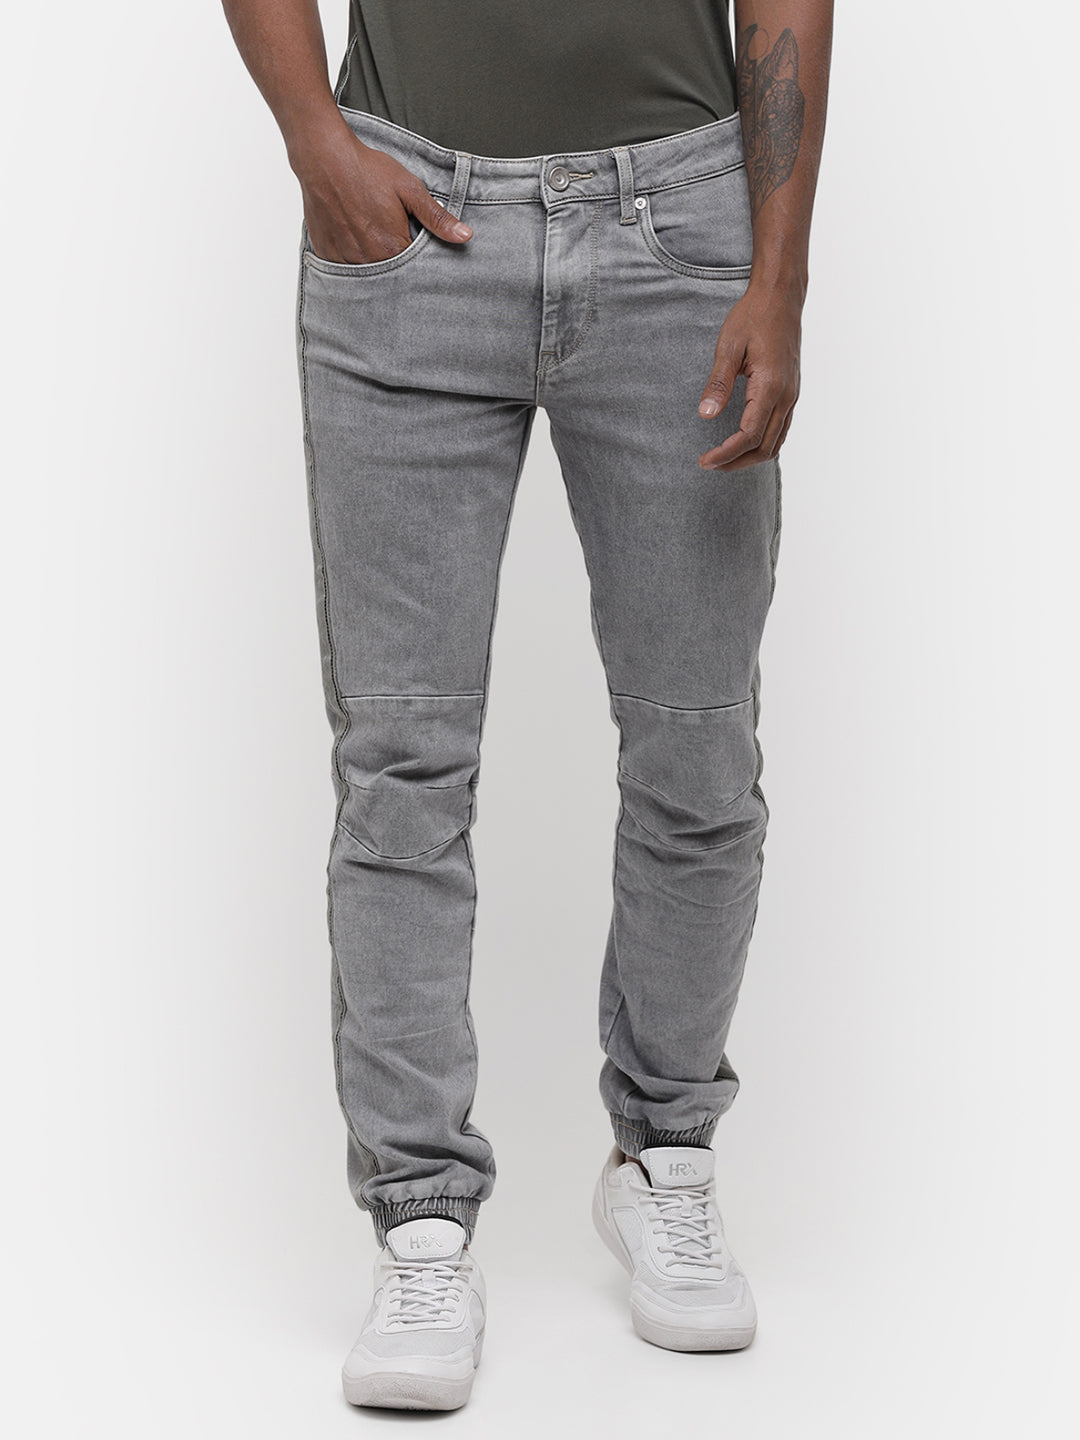 Men's Light gray Biker jogger denim